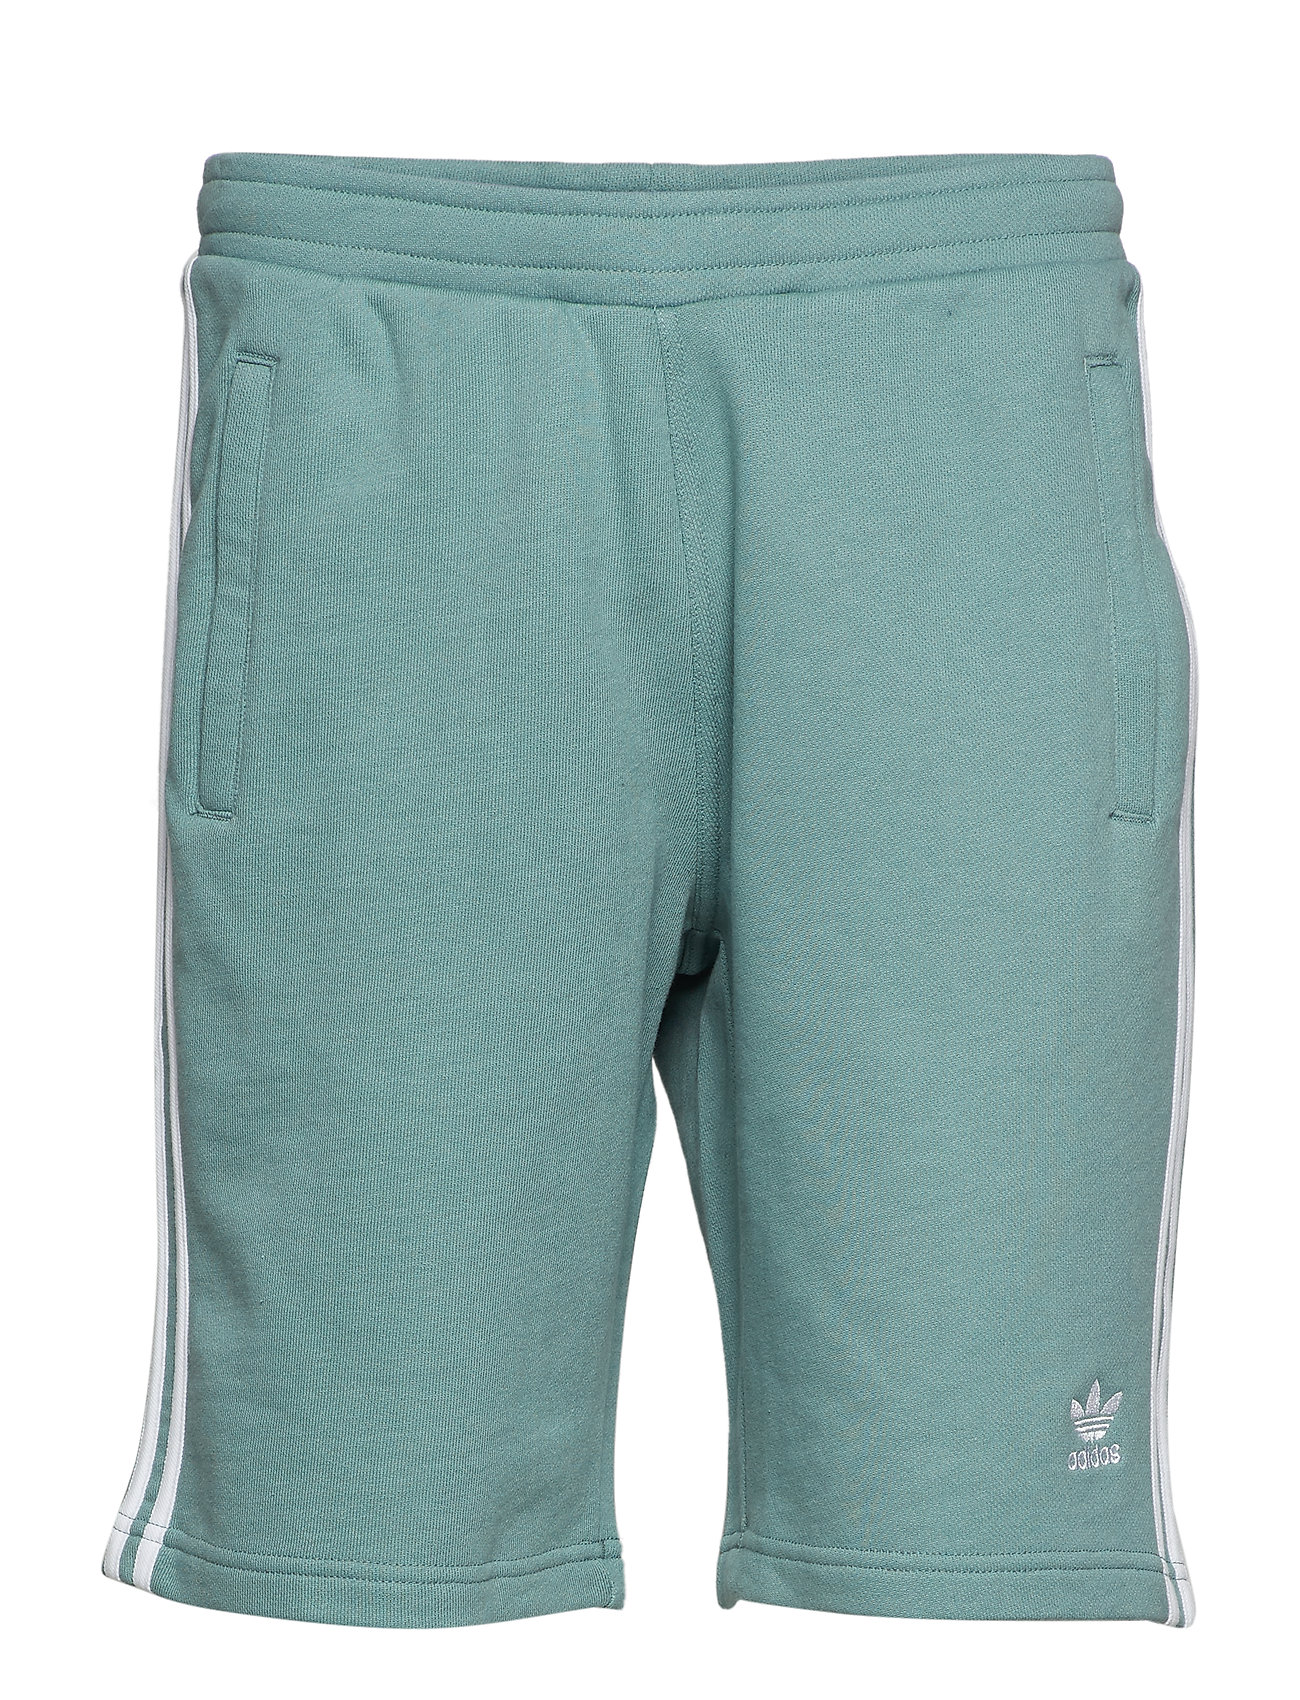 9fdbc01640b Adidas shorts – 3-Stripe Short til herre i Sort - Pashion.dk